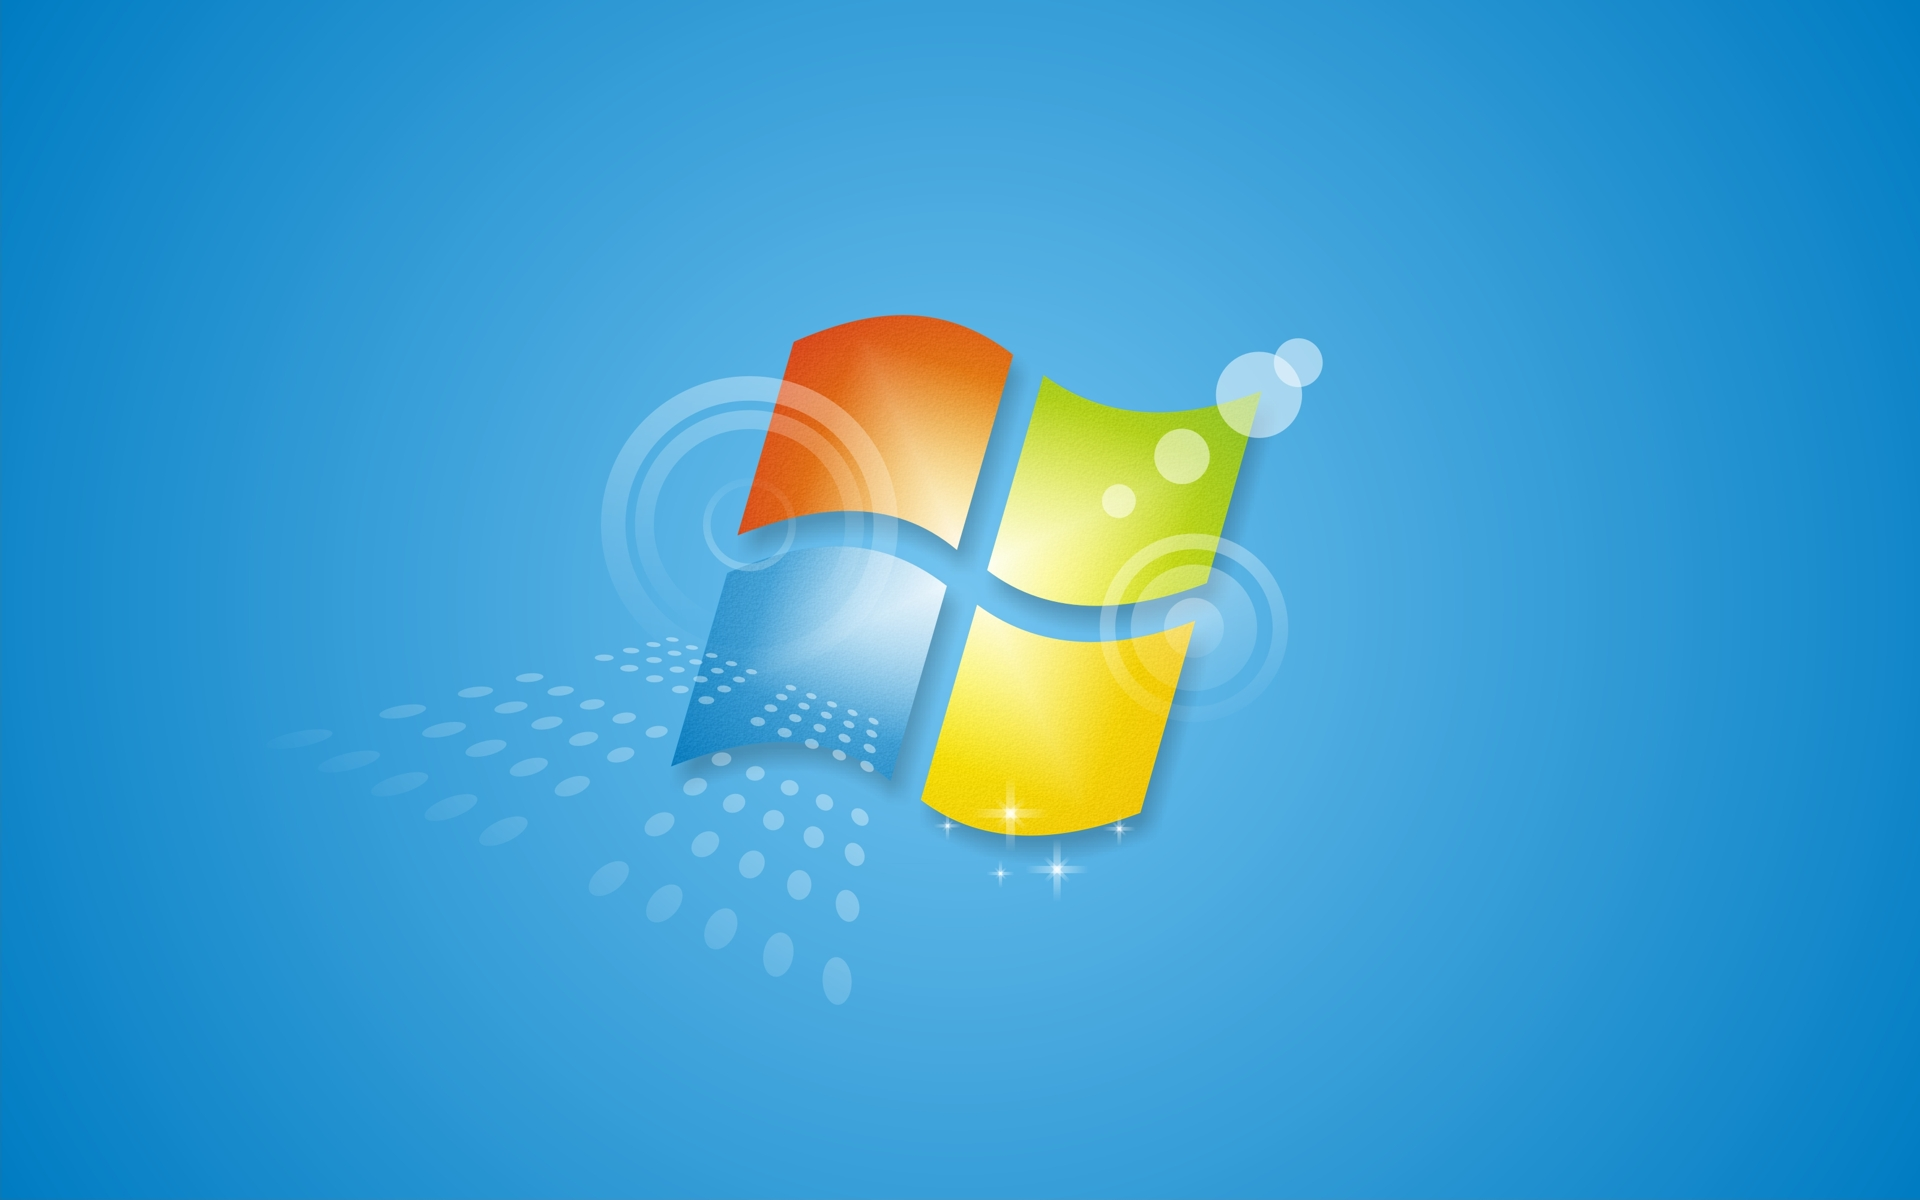 Windows 7 High Quality Background on Wallpapers Vista